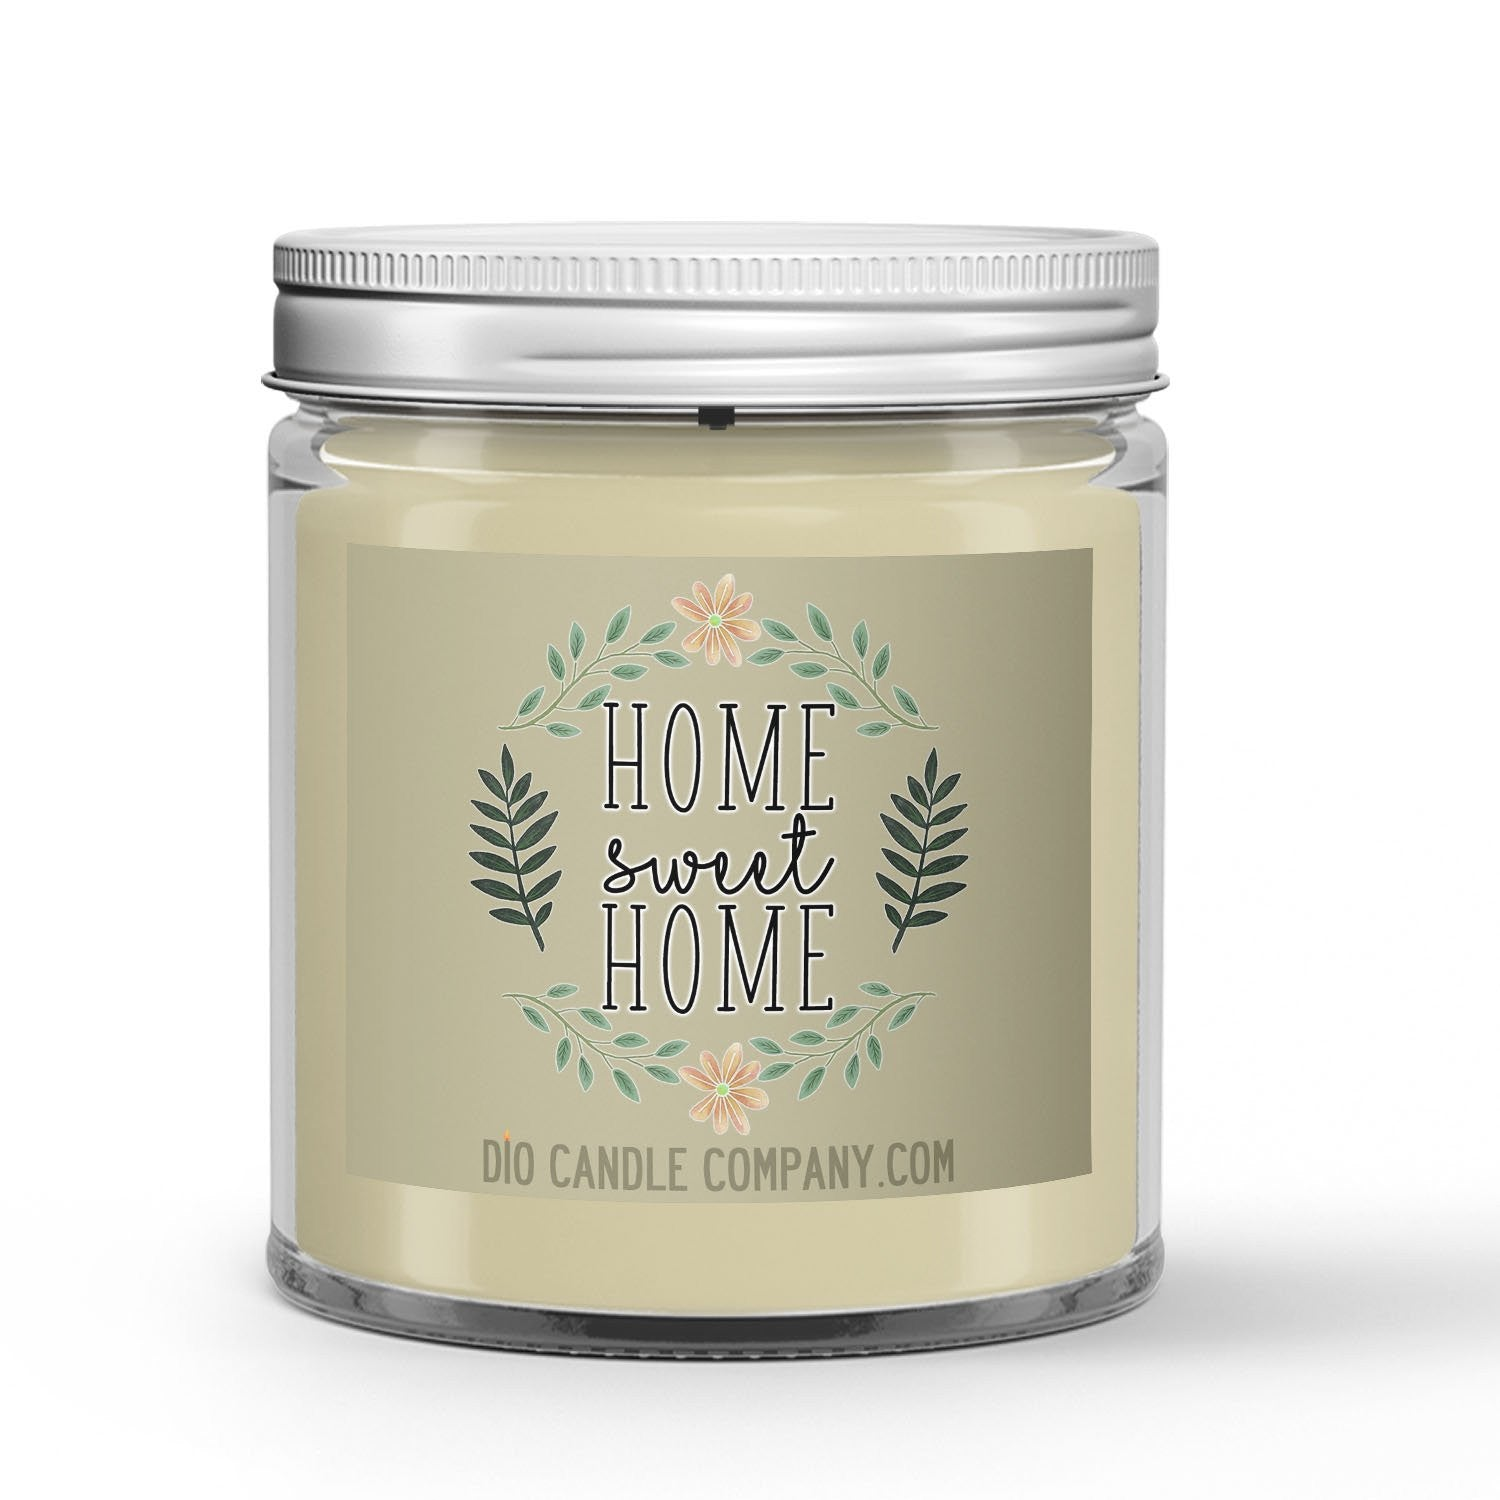 Blueberry Pie - Cotton Scented - Home Sweet Home Candle - 4 oz - Dio Candle Company